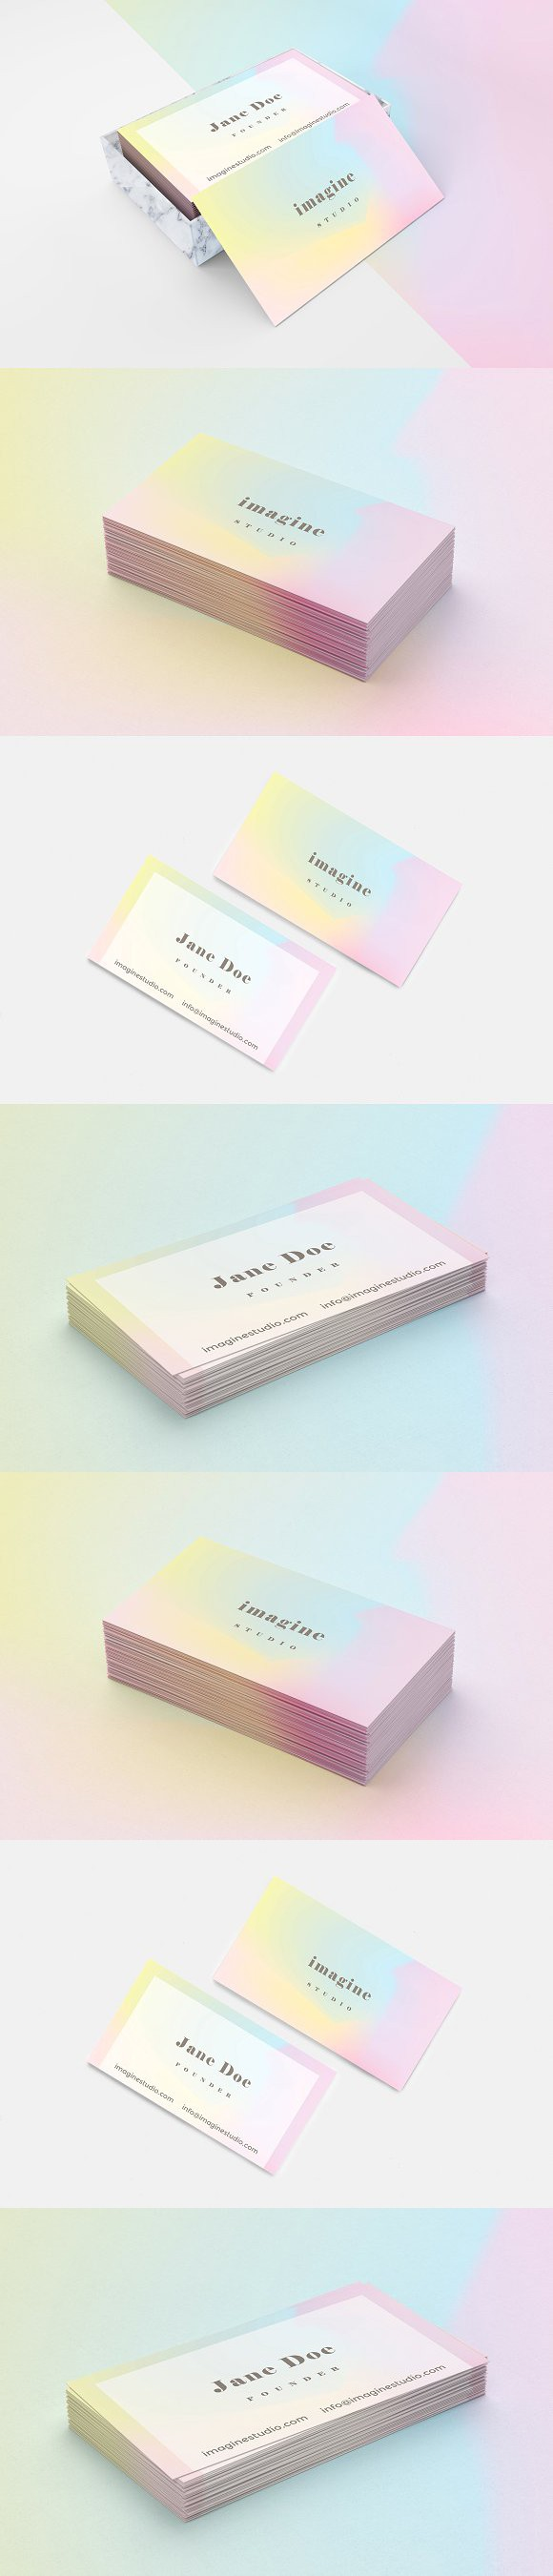 Minimal holographic business card | Pinterest | Holographic ...